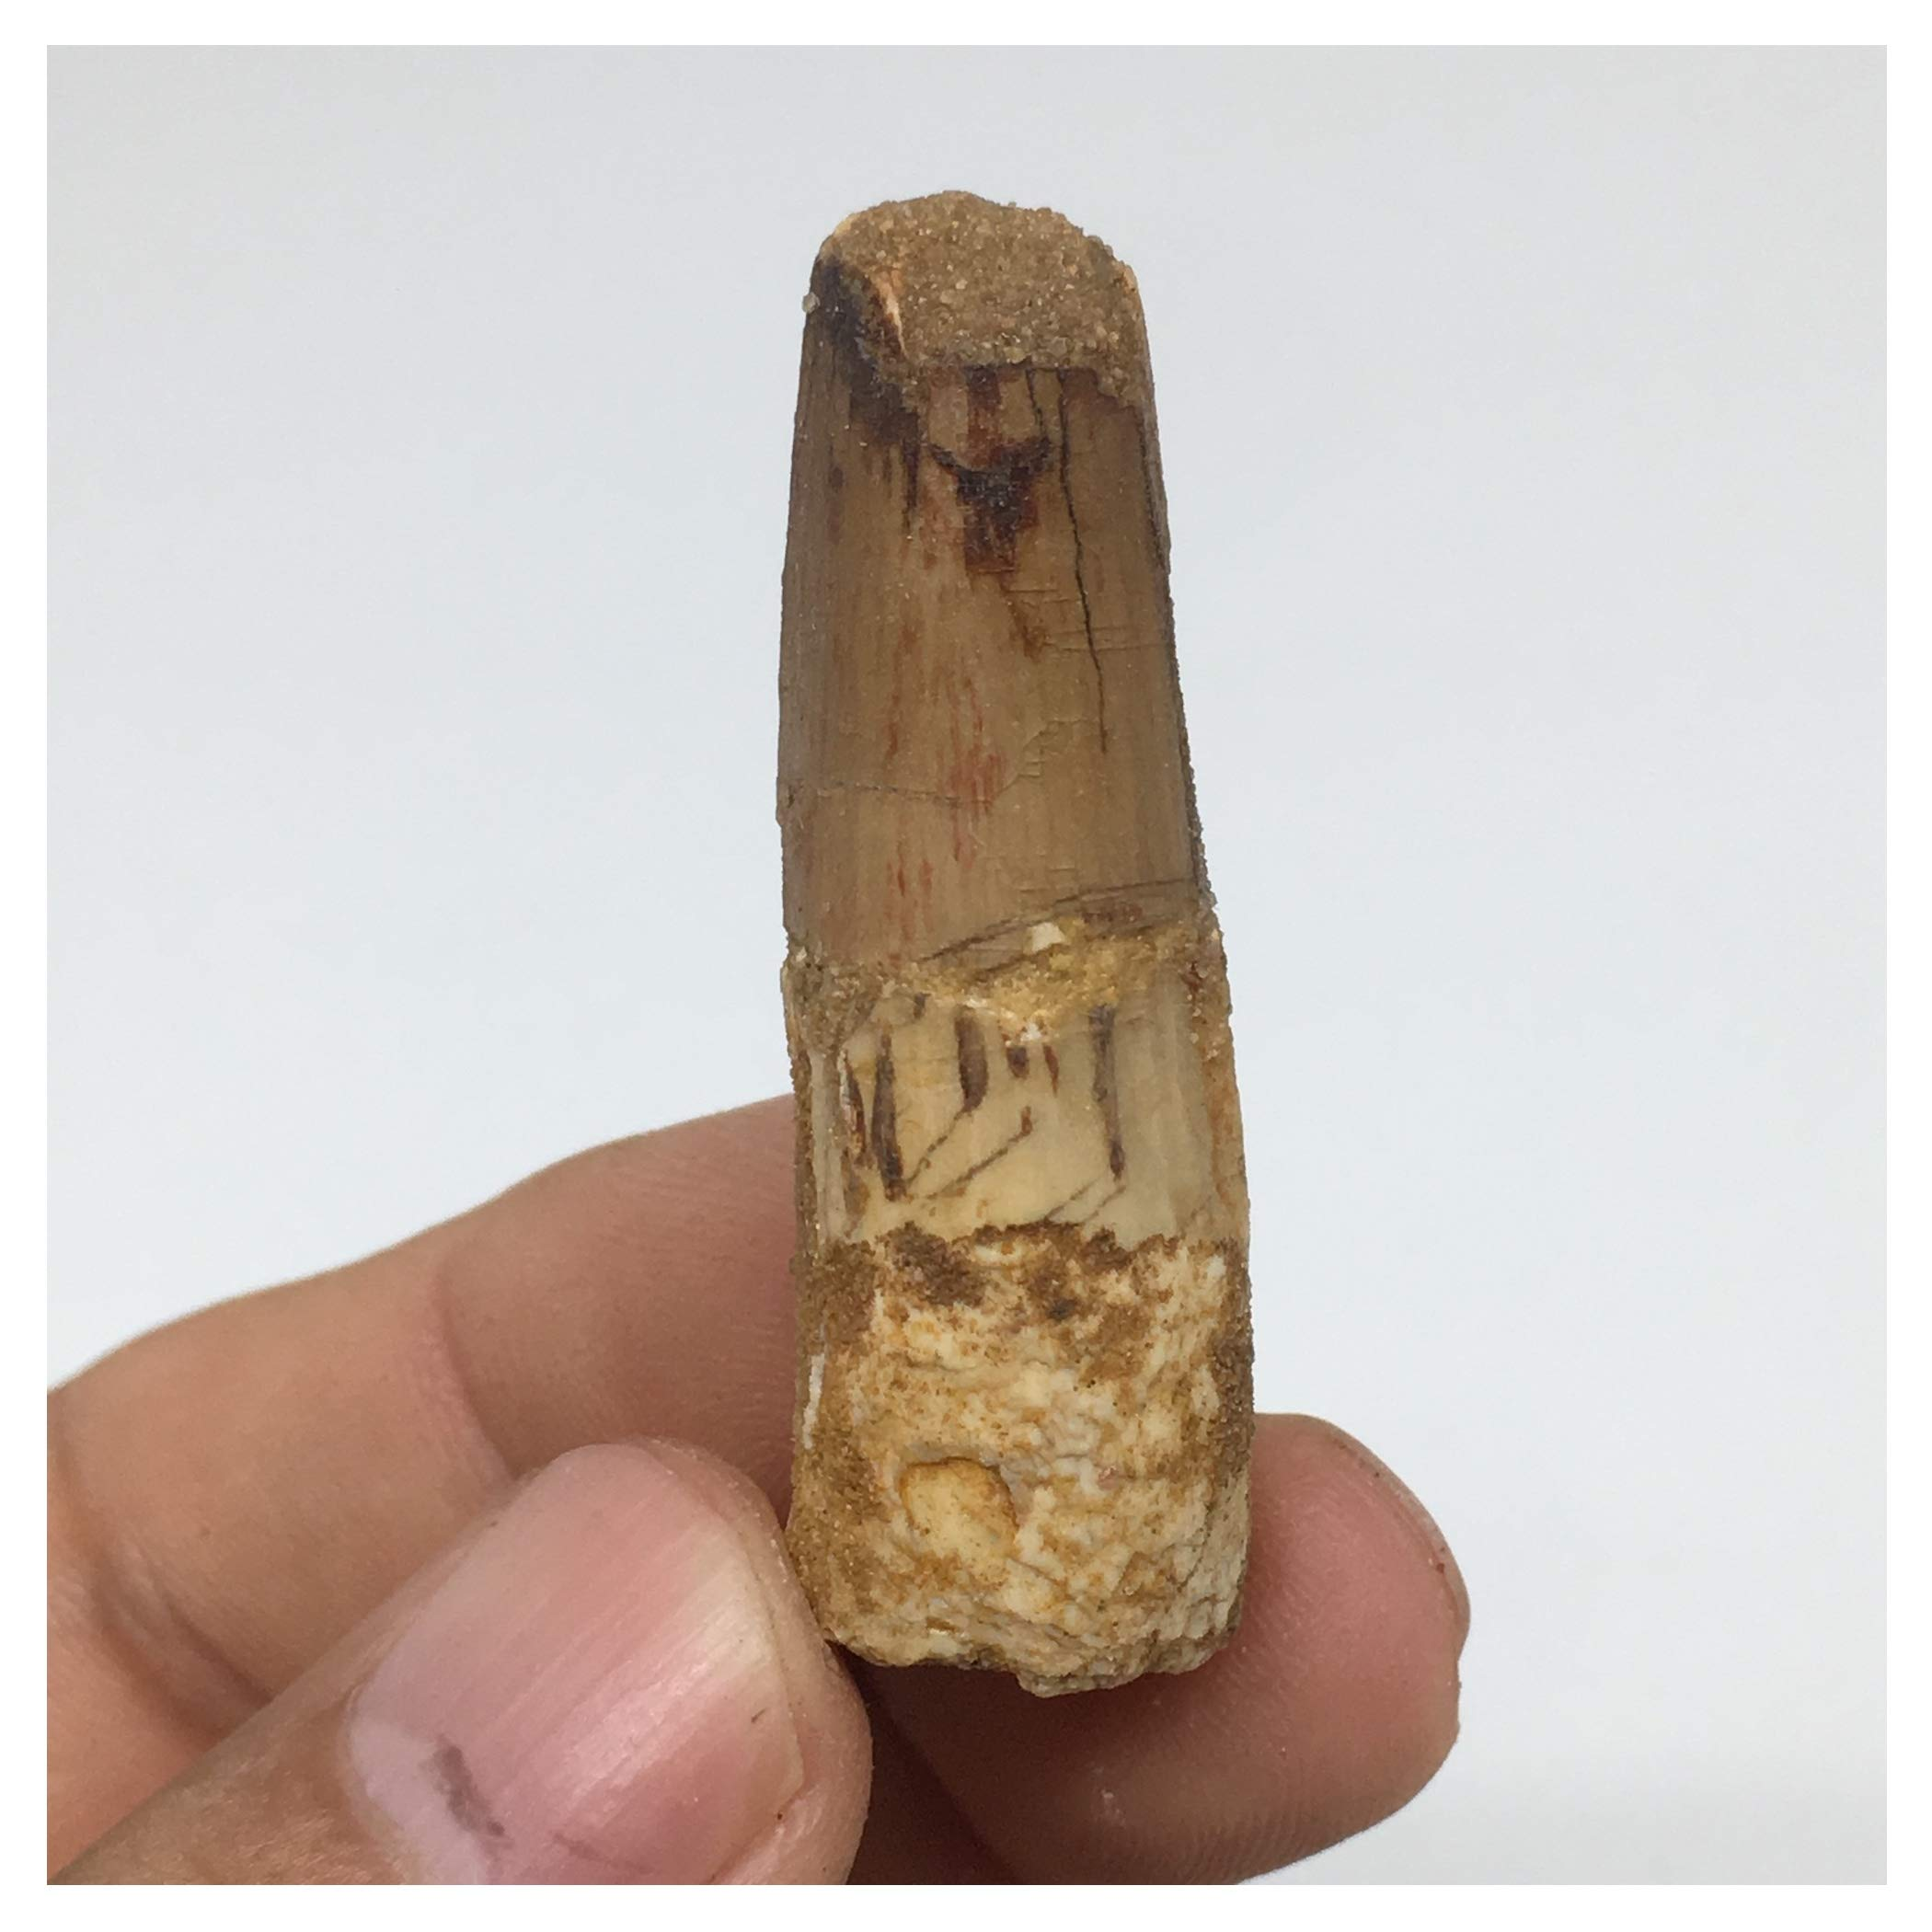 8.1g, 1.7''X 0.6''x 0.6'' Rare Natural Small Fossils Spinosaurus Tooth The Largest Carnivorous Dinosaur from Morocco, Mineral, Specimens, F126